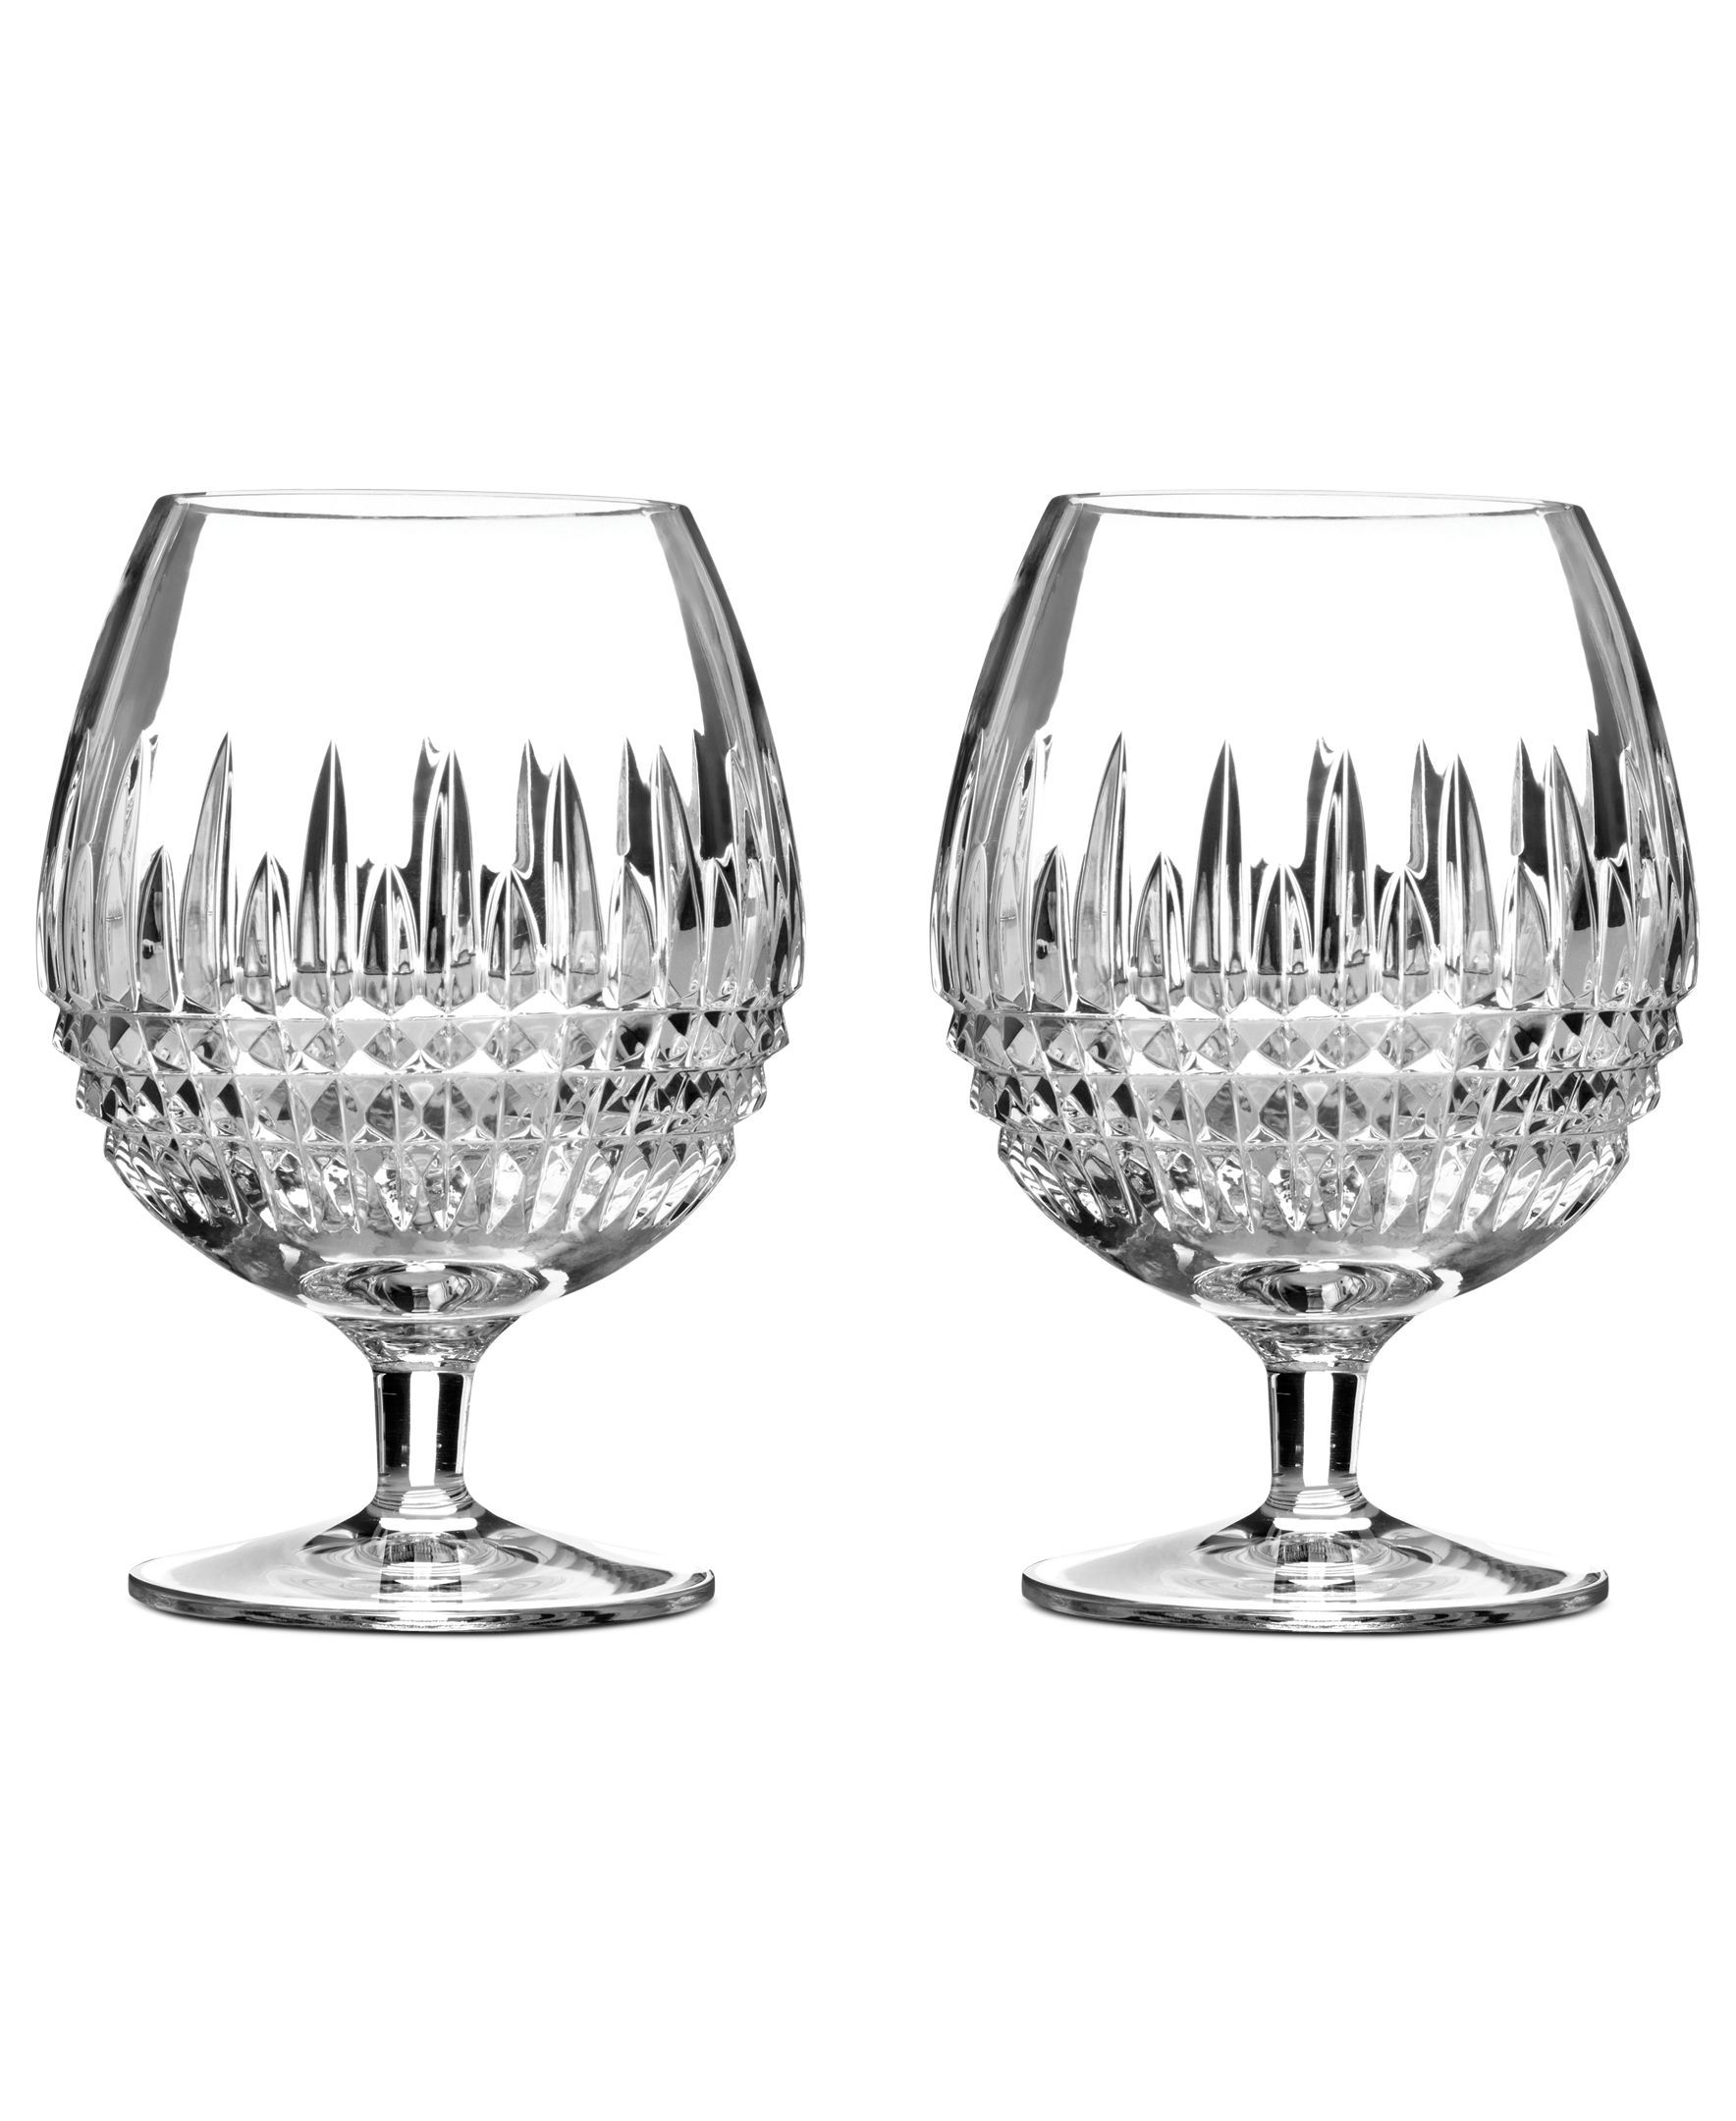 Superior Crafted For A Lifetime Of Fine Dining, Lismore Diamond Brandy Glasses  Balance An Intricate Cut